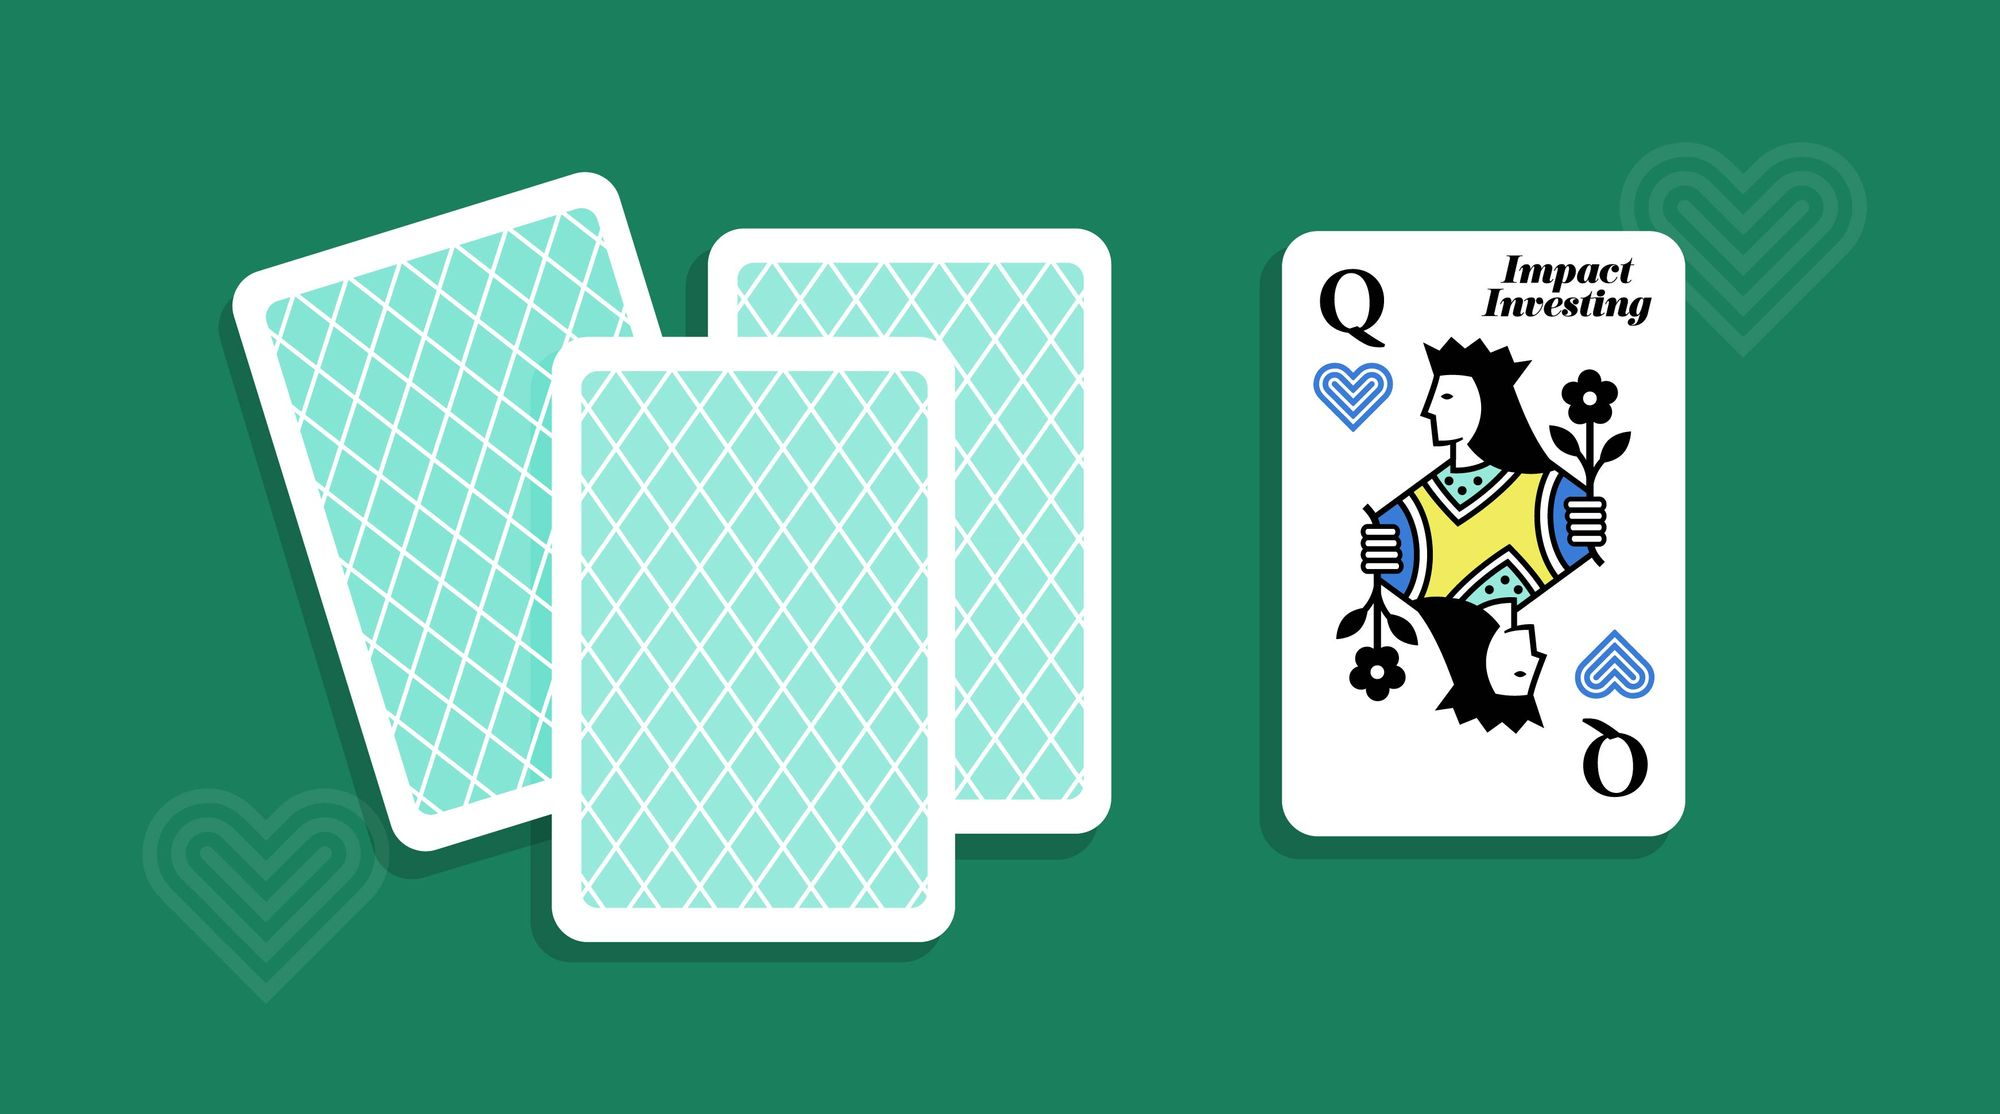 A graphic representing a card deck with a queen of hearts being shown.